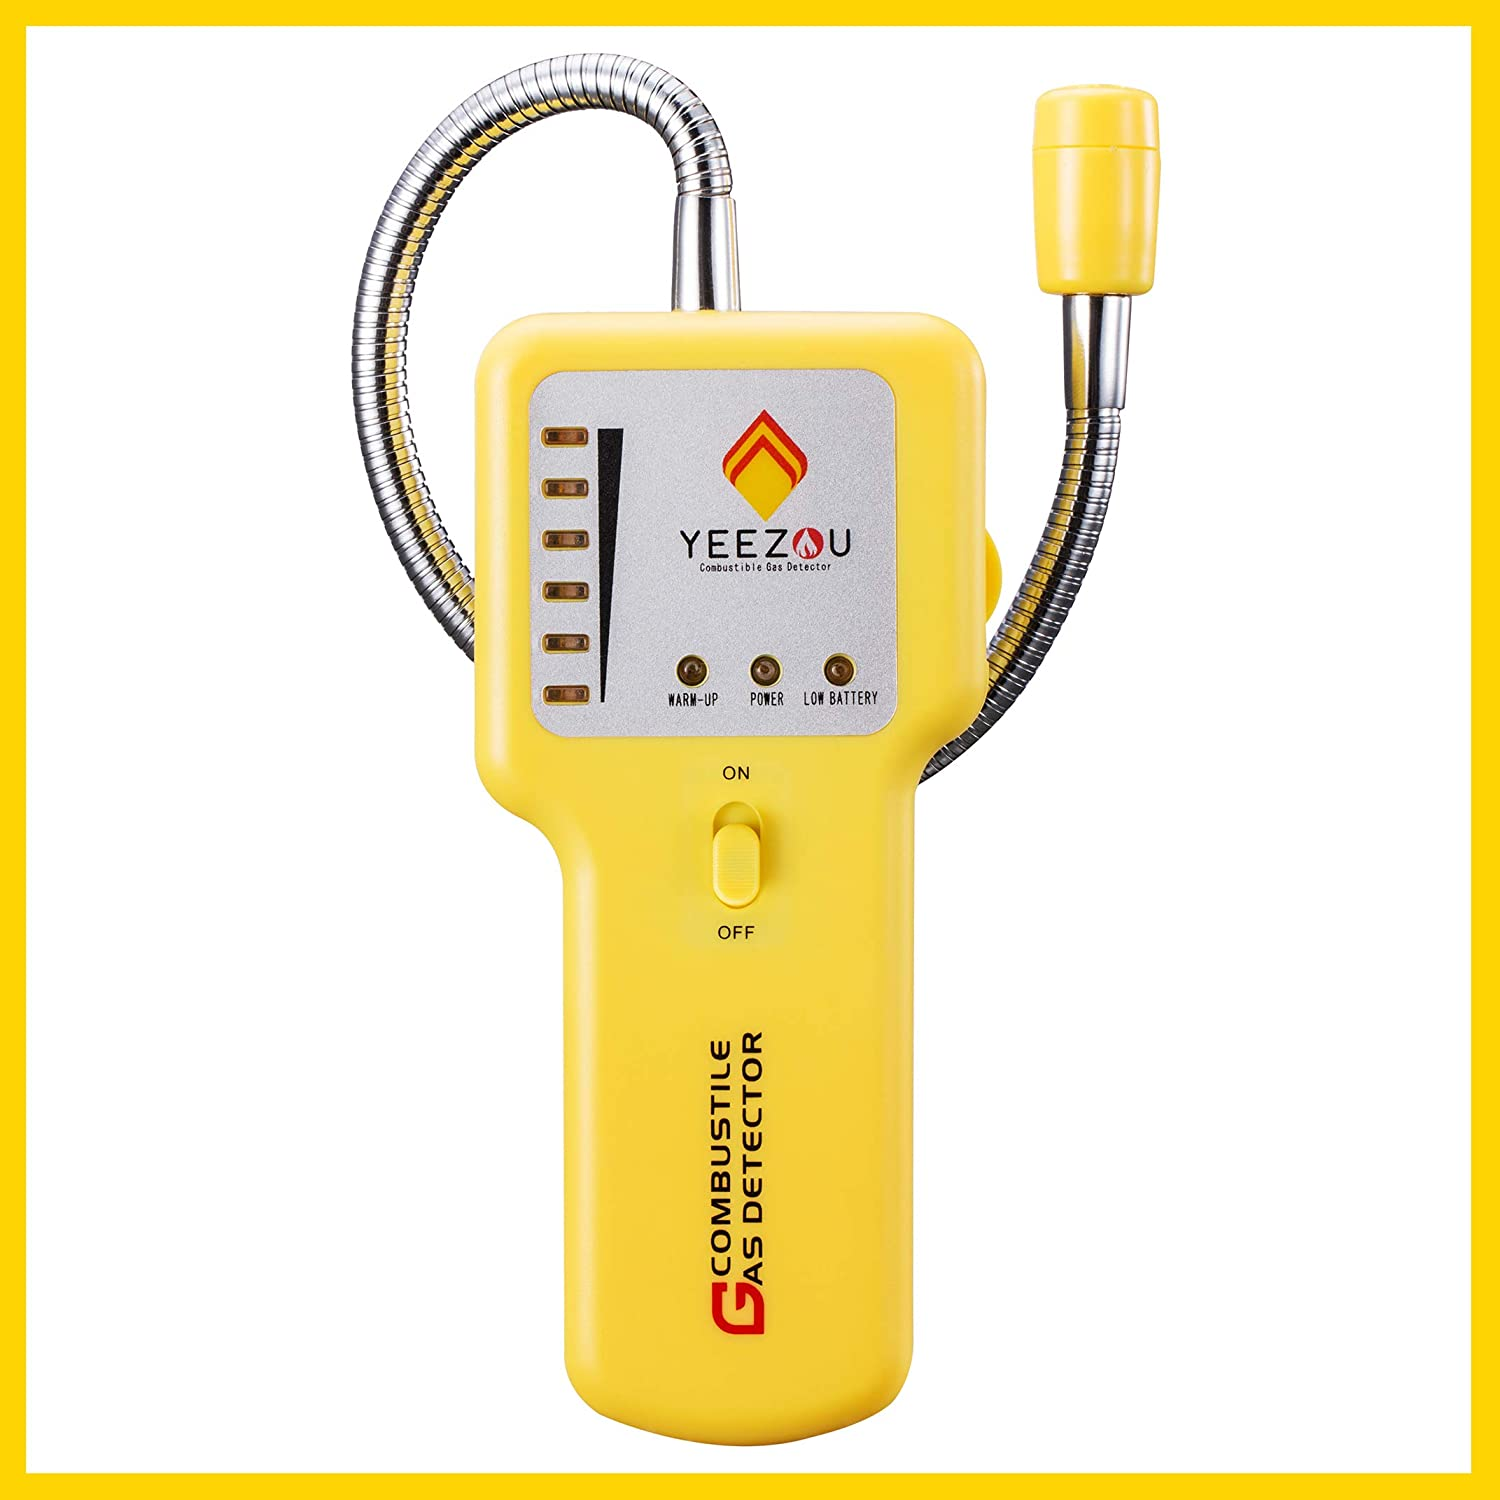 Y201 Portable Combustible Gas Leak Detector; Detect Leaks of Combustible Gases Such as Methane, Propane, Natural Gas, Fuel, LPG,LNG ;Sound Alarm